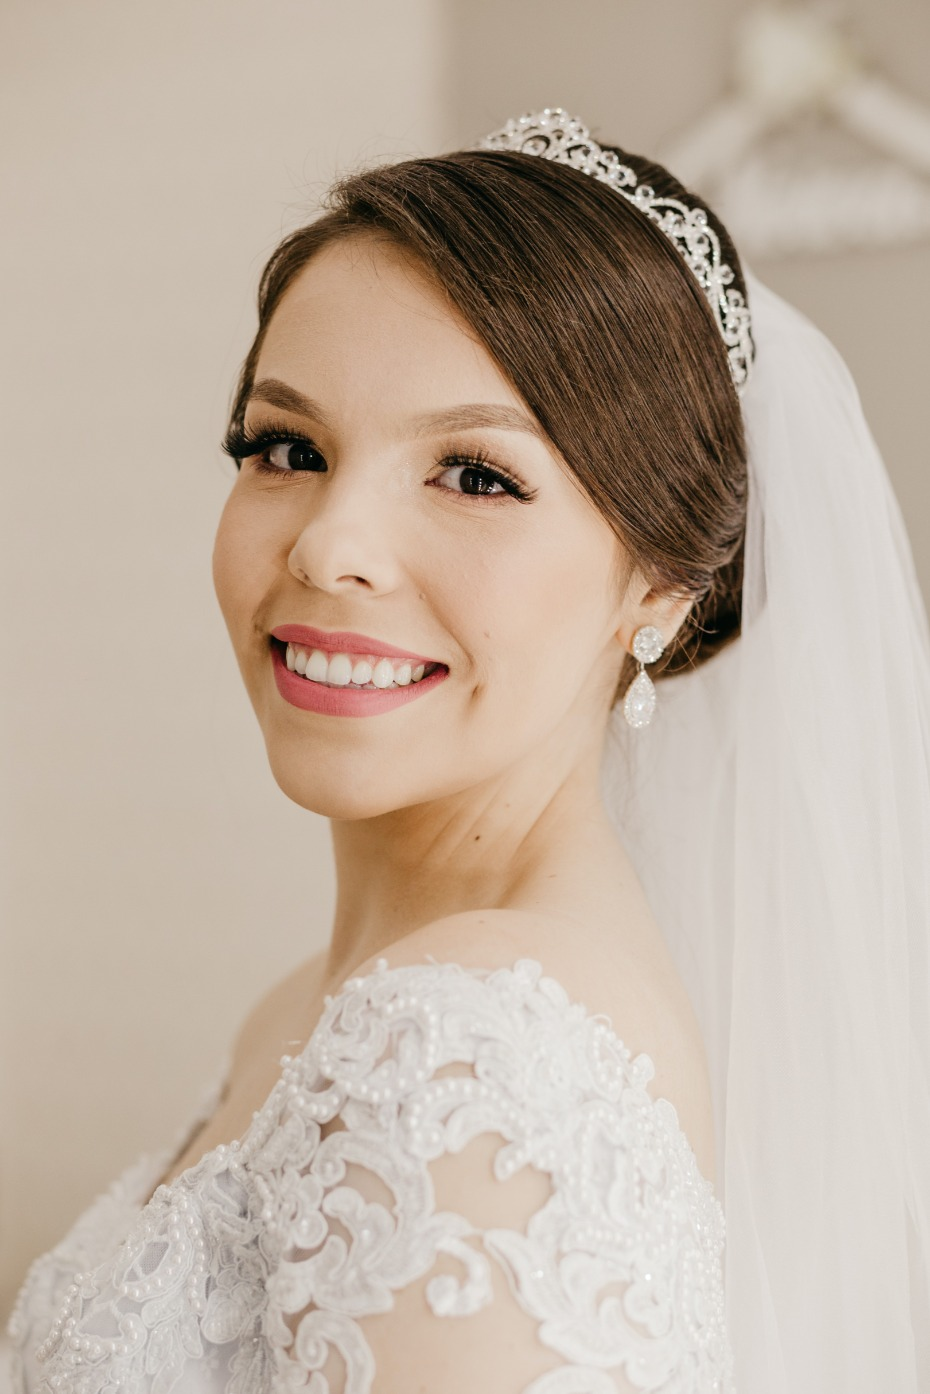 Flawless Wedding Skin Is 'In' More Than It's Ever Been Before